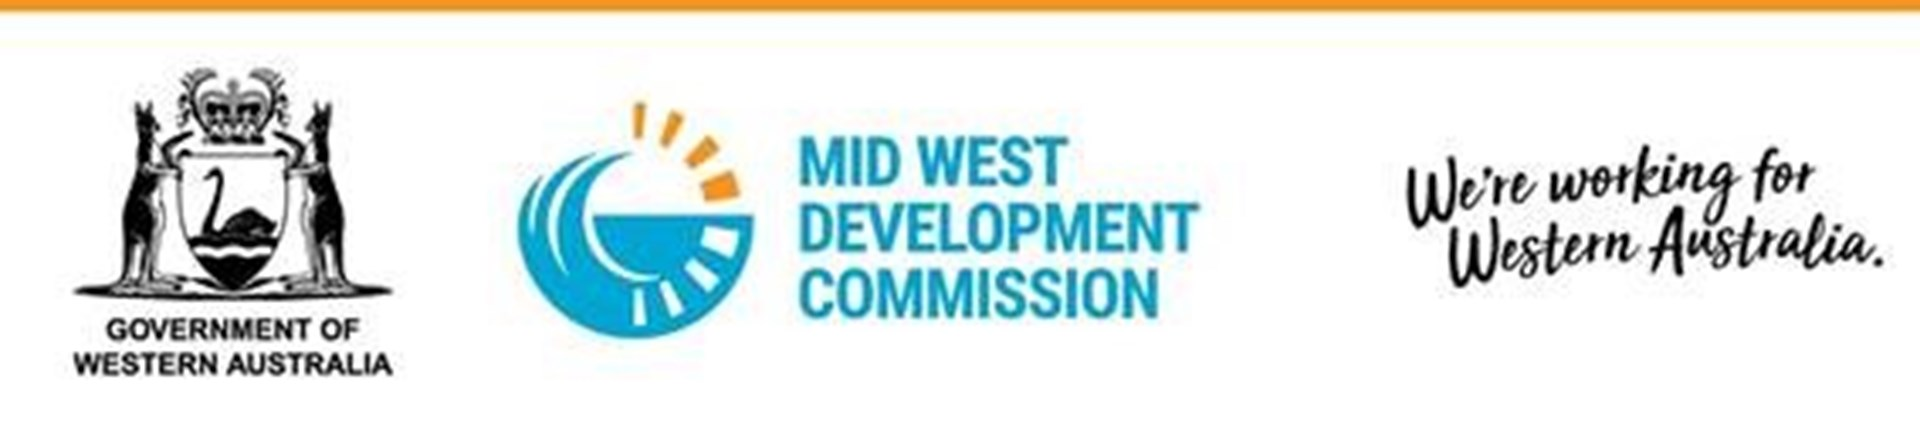 Picture: Mid West Development Commission